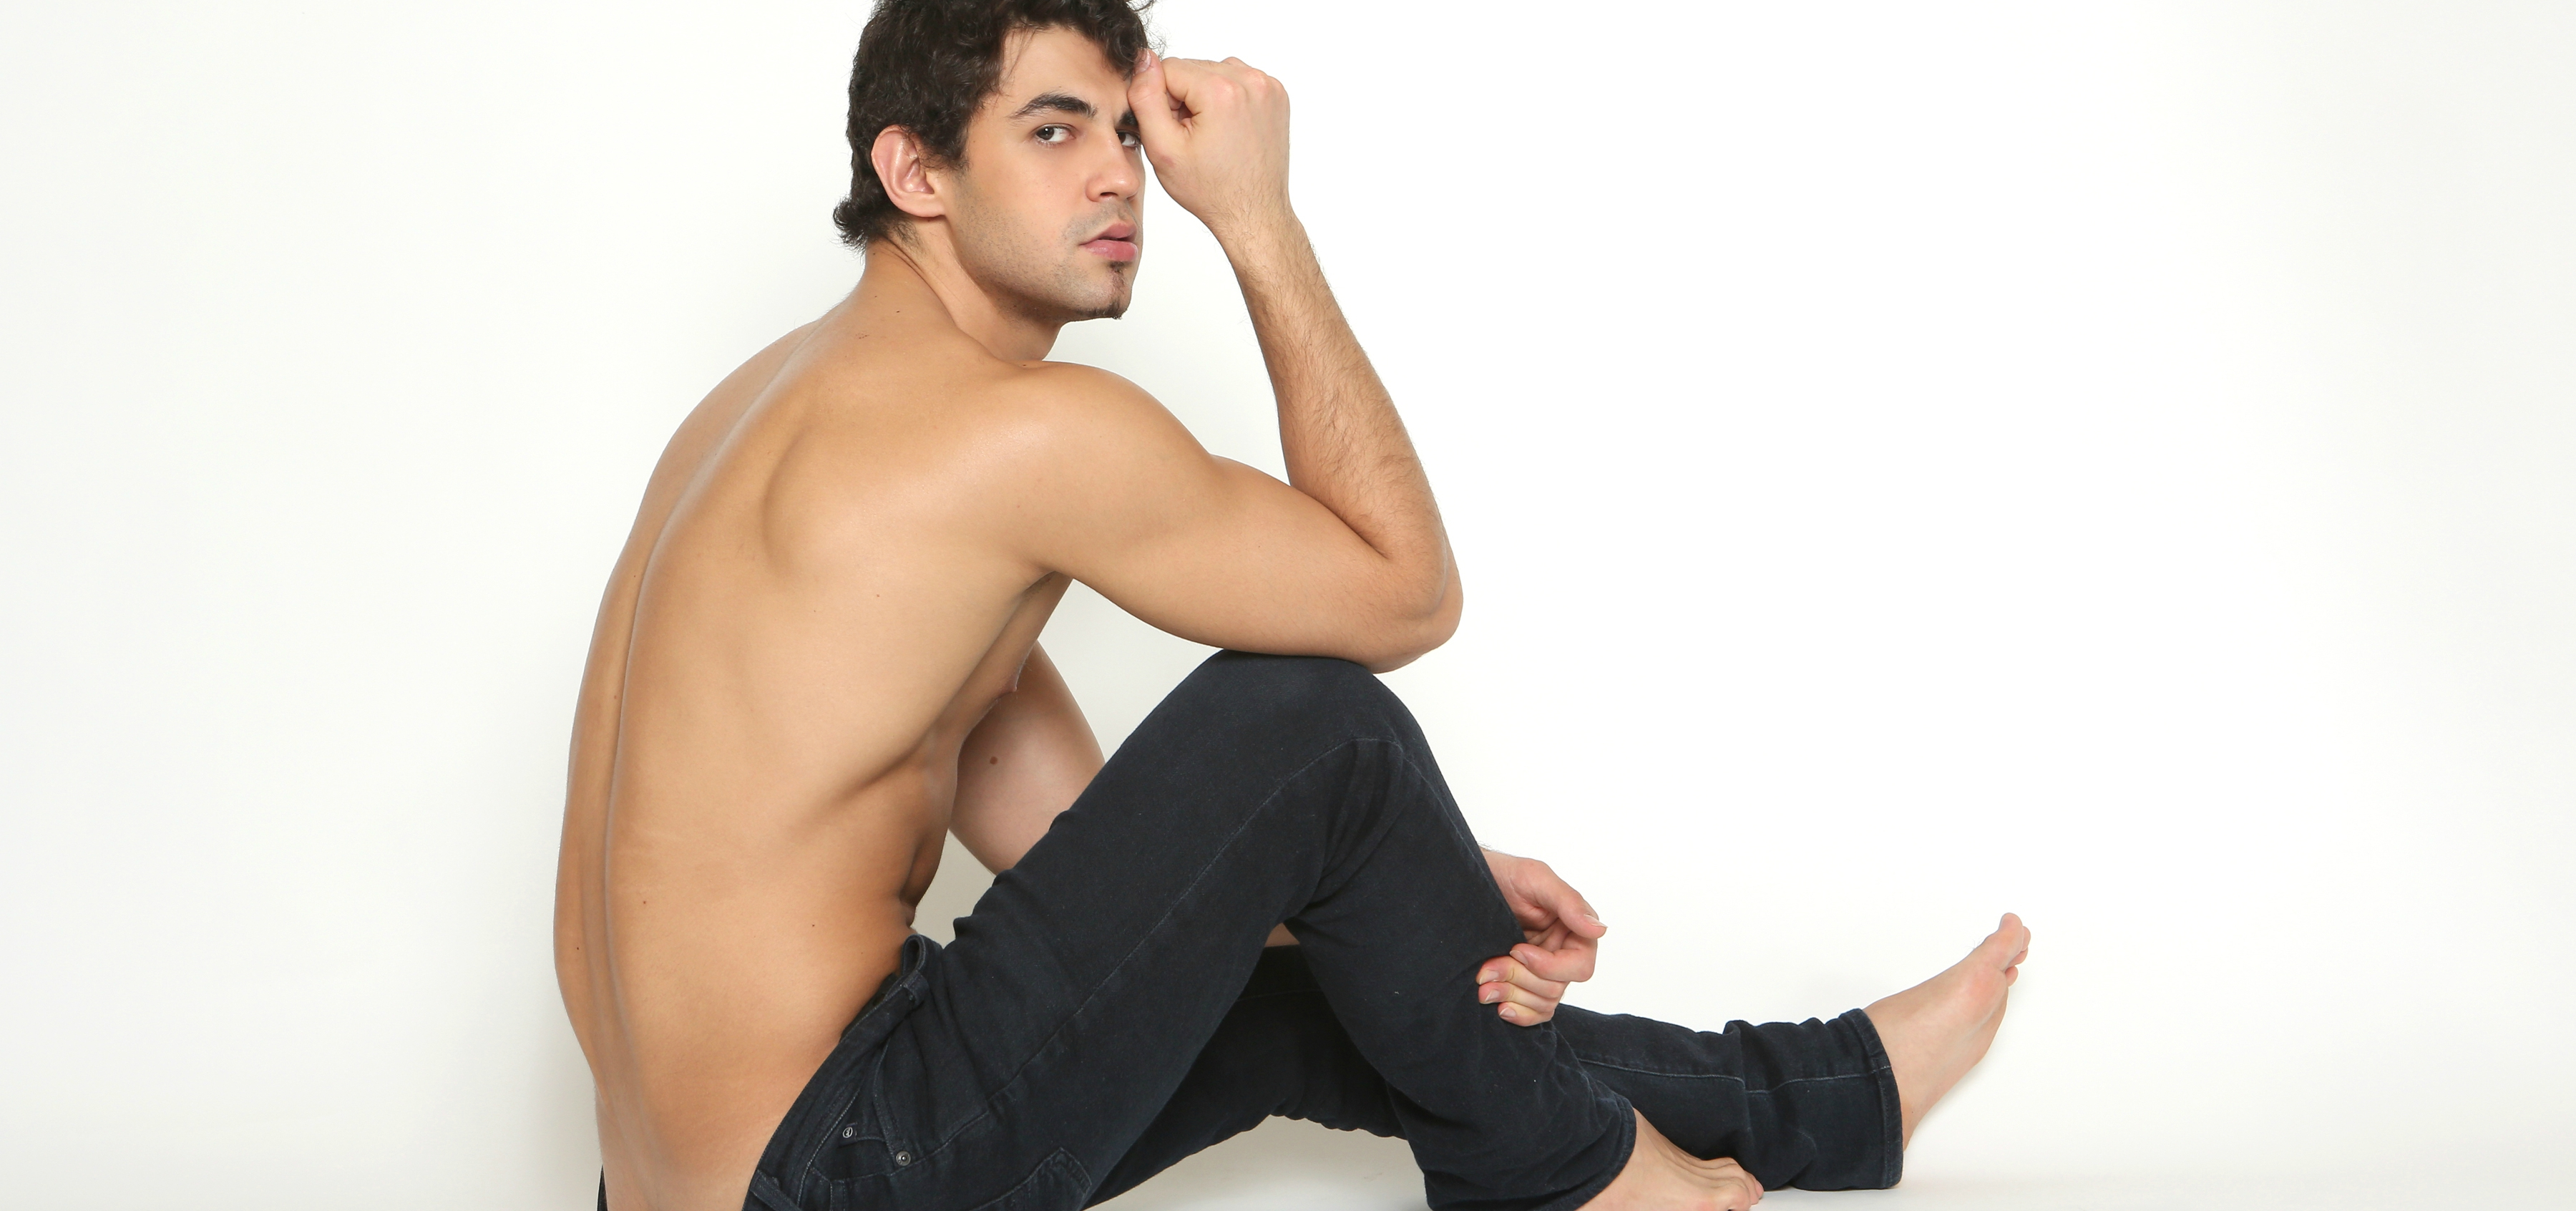 Meet Sexy Model Jean Arsirii: The Heartthrob You Need to Get Through Your Day